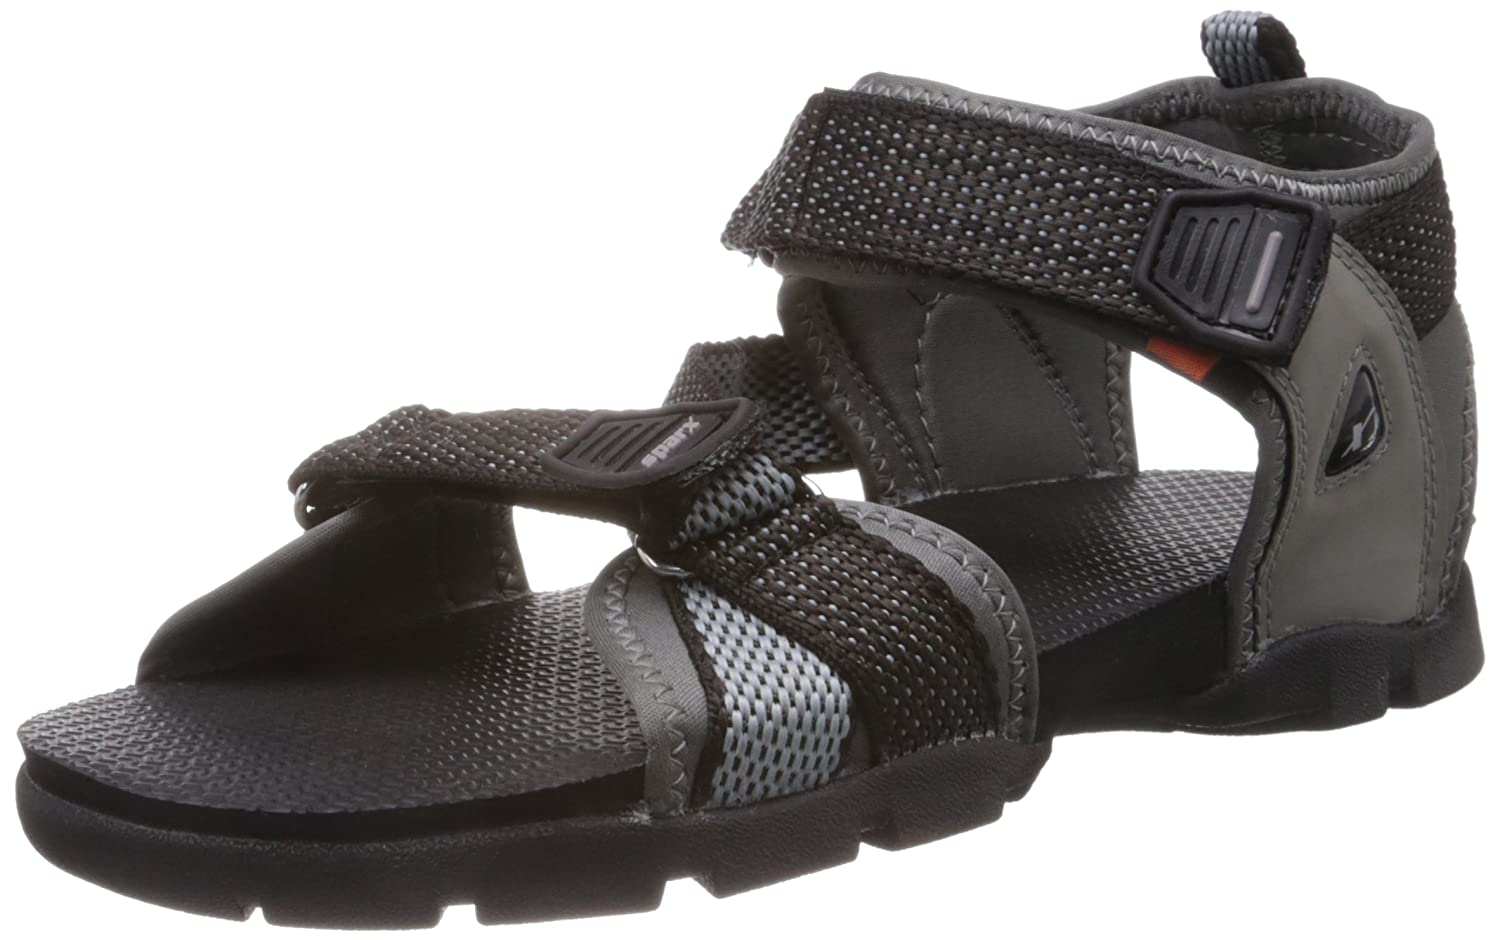 Sparx Men's Athletic sandals for men